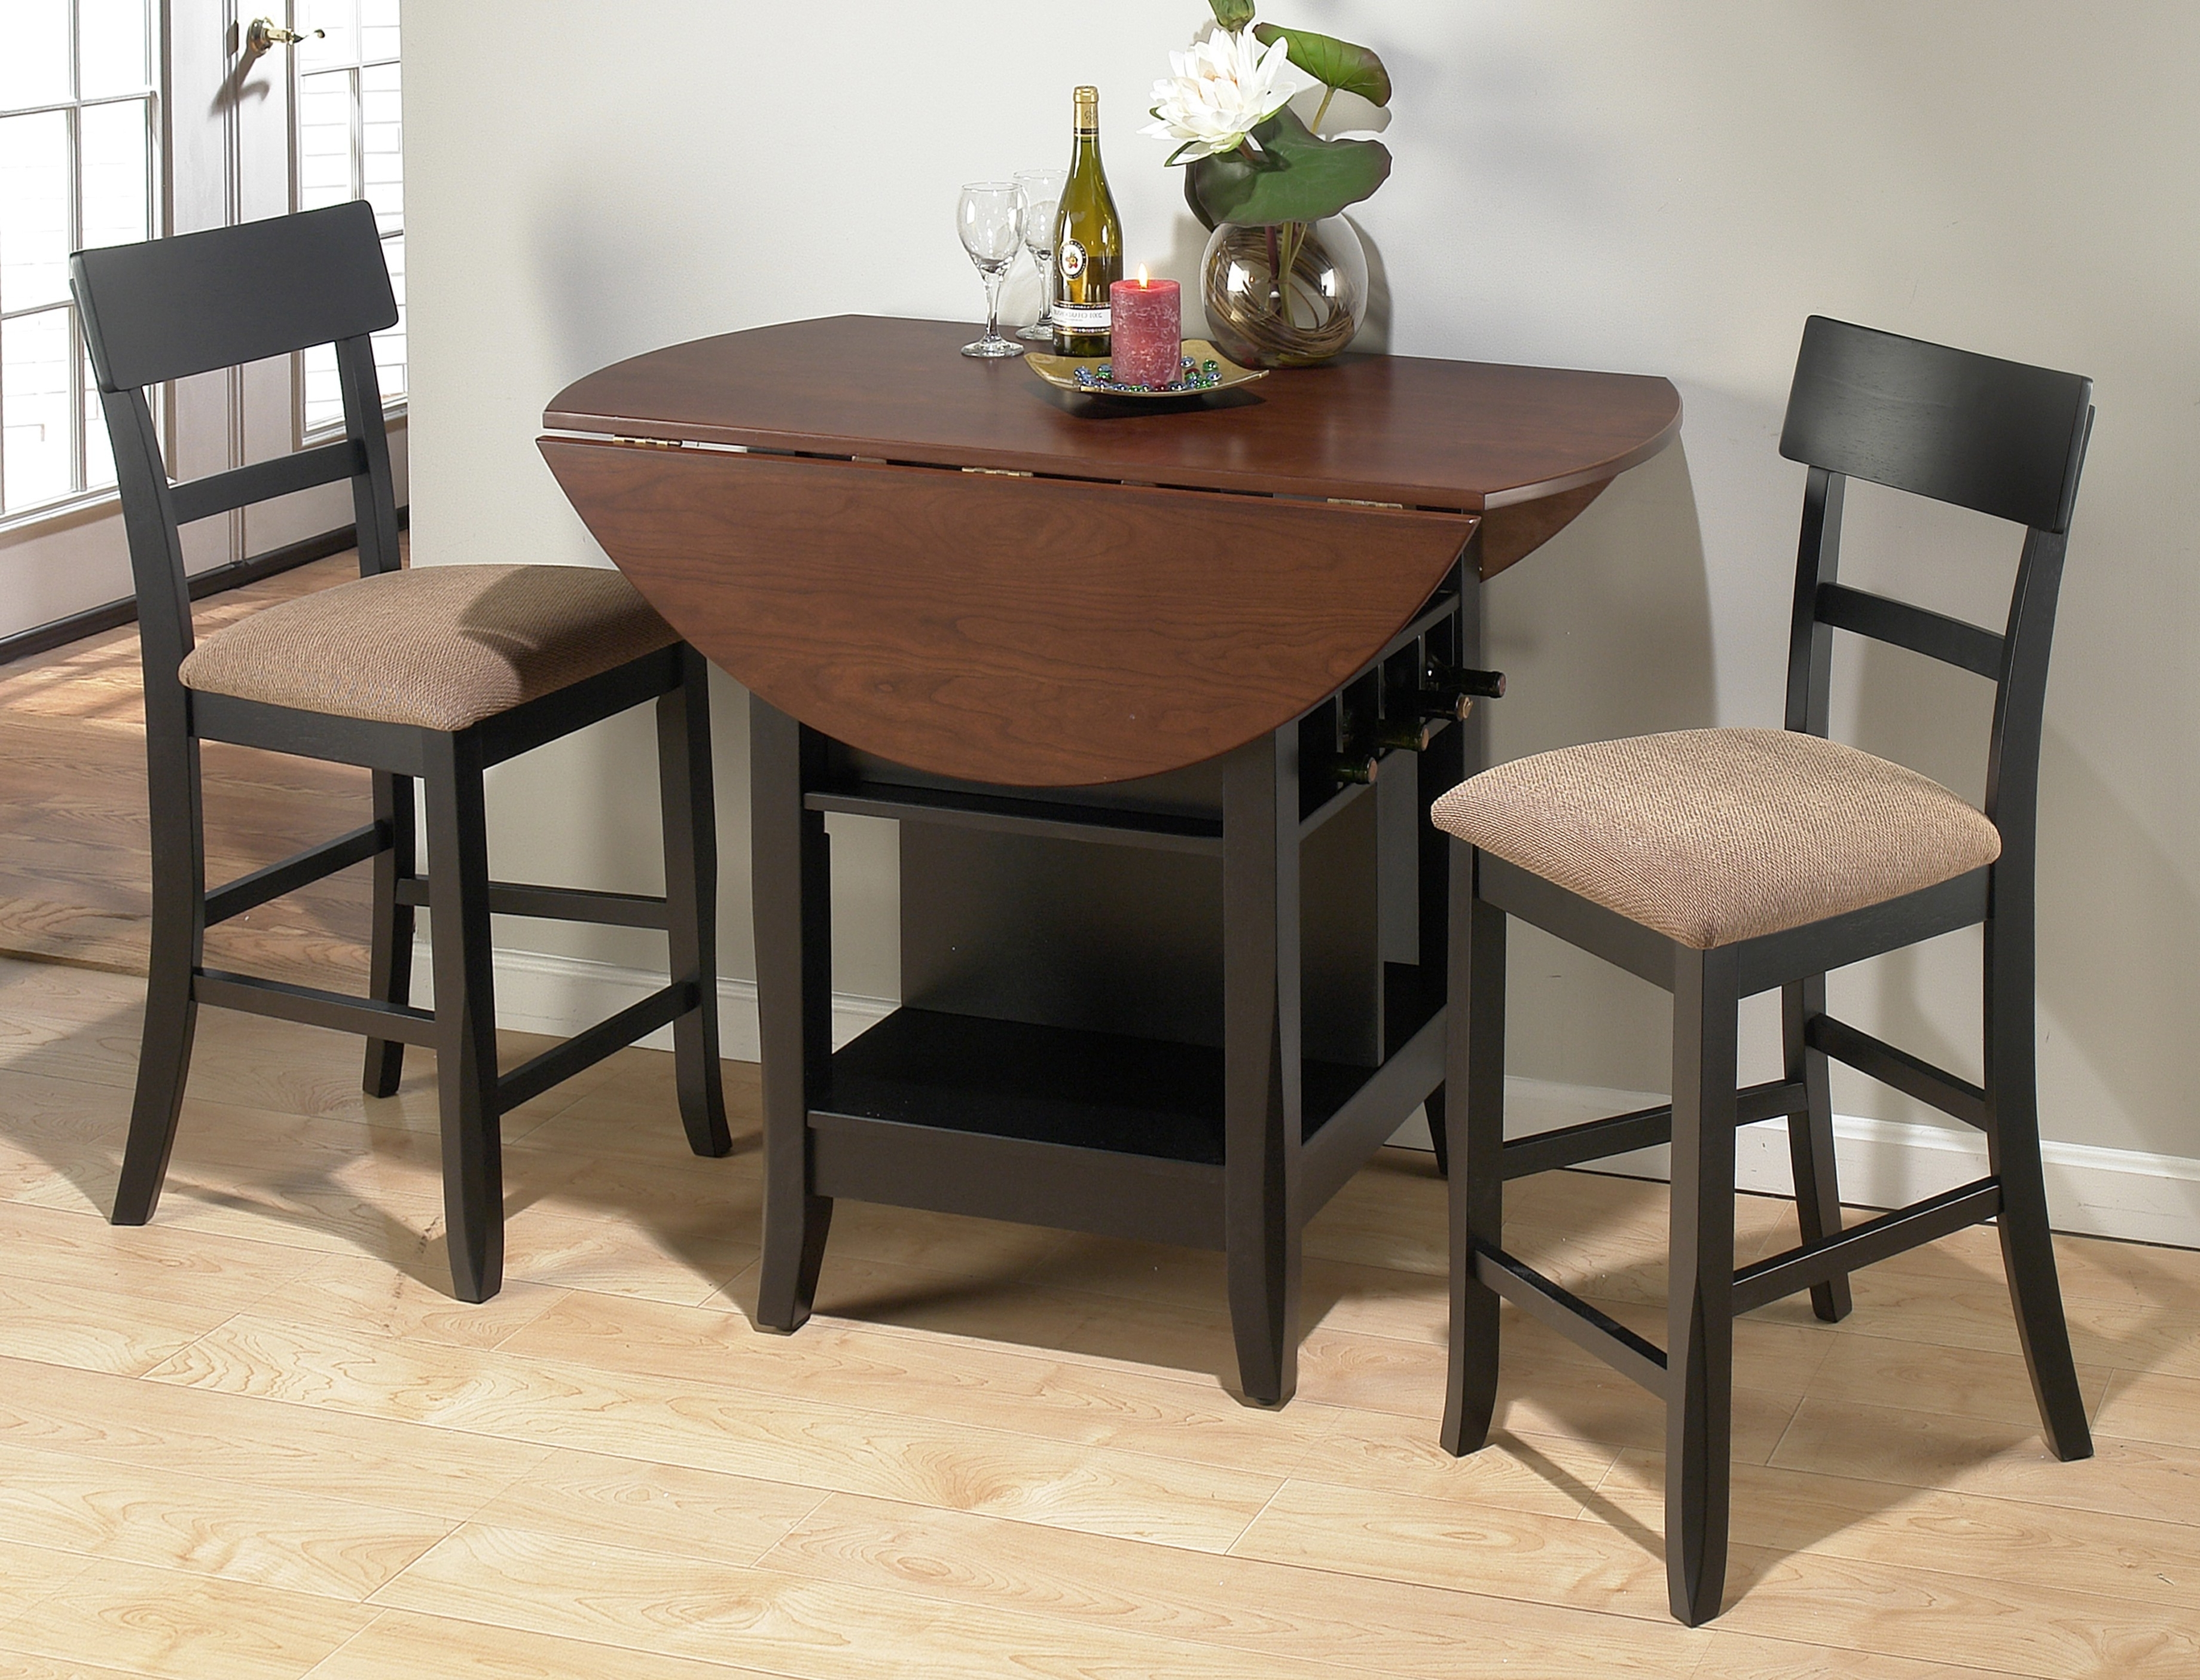 Well Liked Small Dark Wood Dining Tables Intended For Dining Room Small Dining Table Designs Kitchen Dining Sets For Small (View 23 of 25)